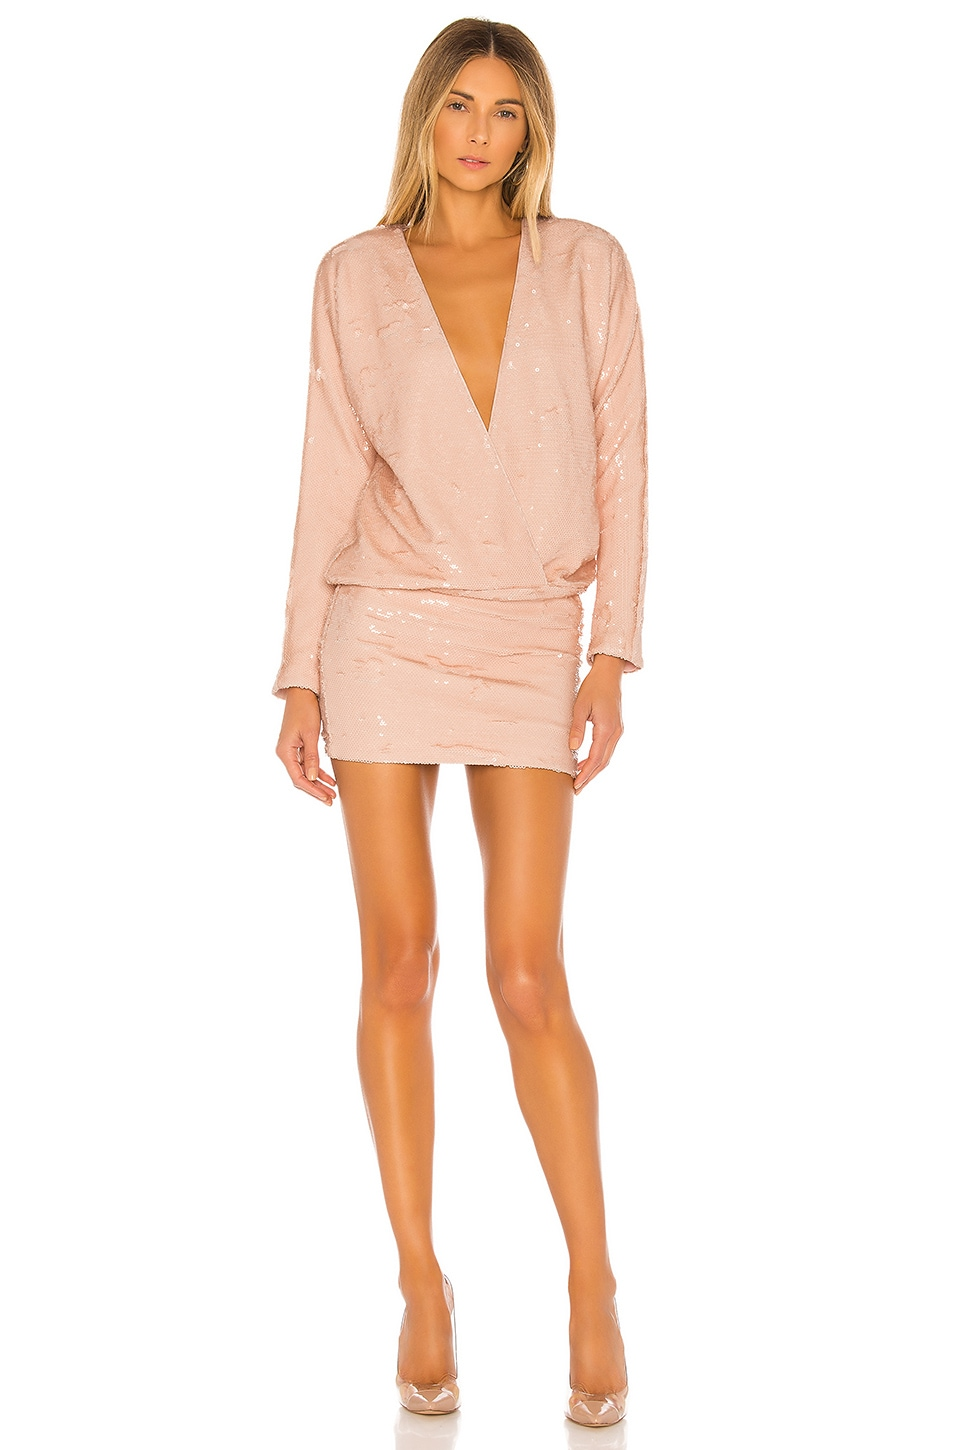 L'Academie The Clementine Mini Dress in Nude